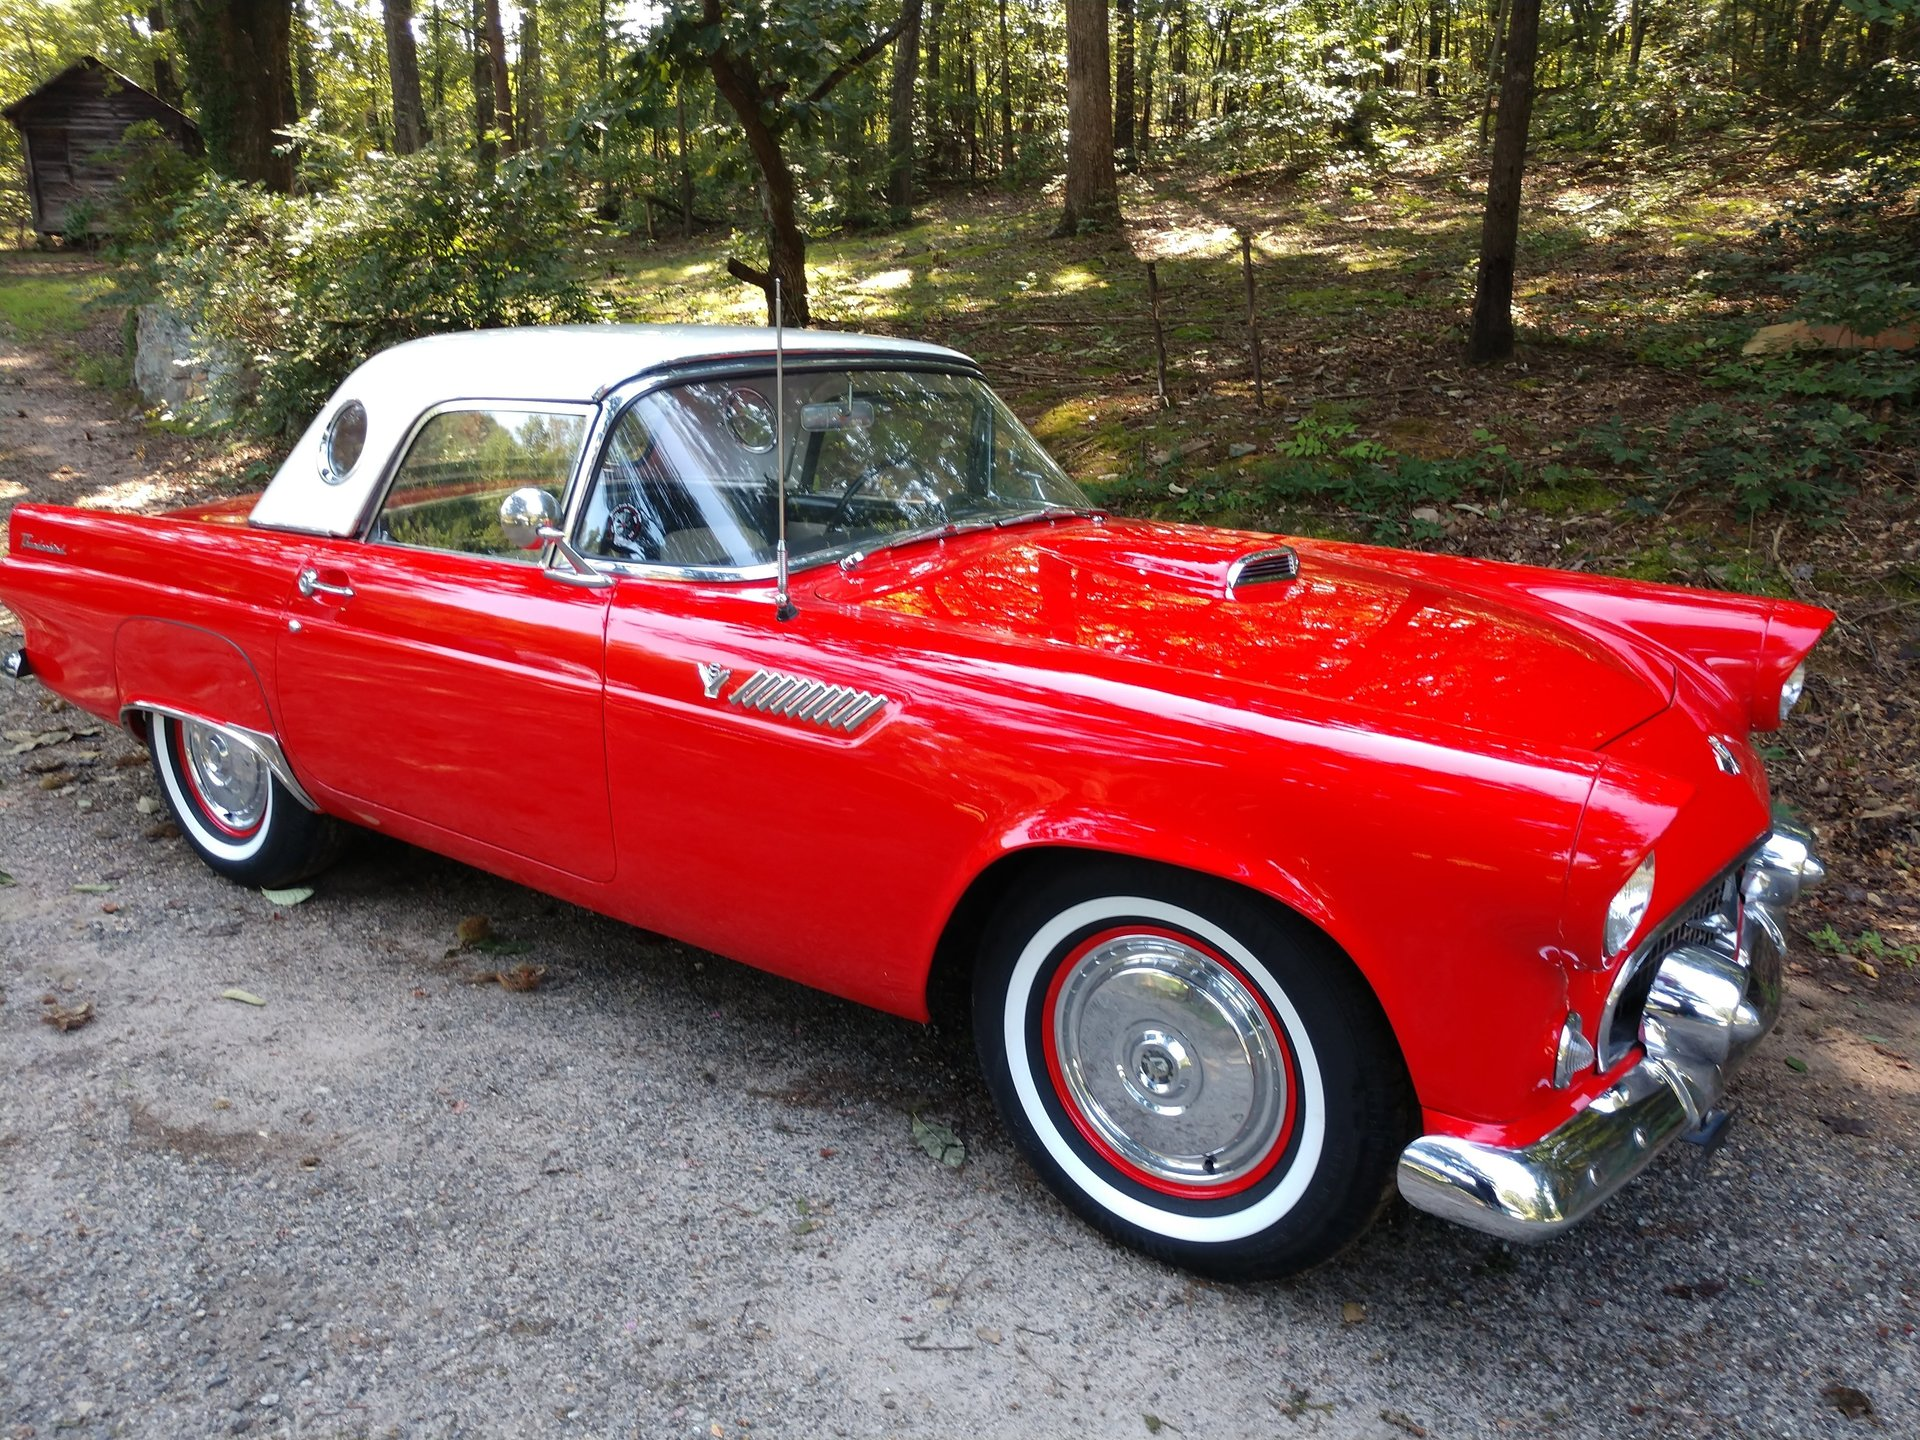 1955 ford thunderbird silverstone motorcars. Black Bedroom Furniture Sets. Home Design Ideas